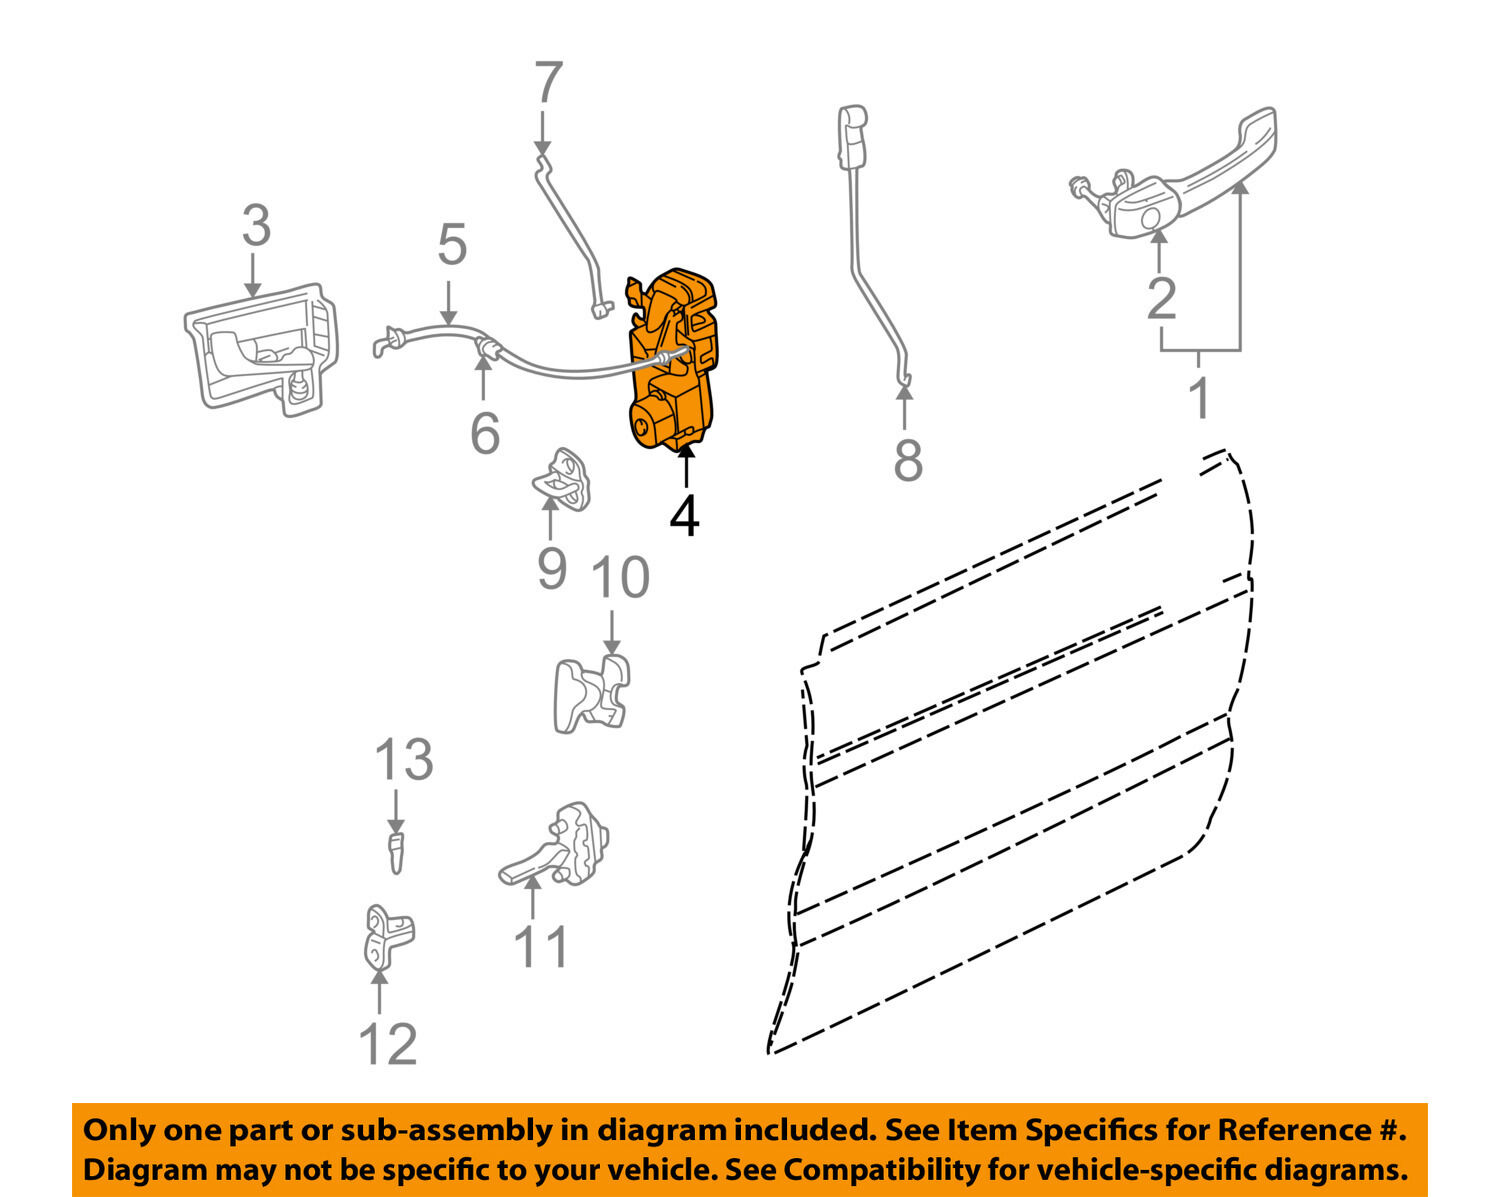 Land Rover Oem 99 04 Discovery Front Door Lock Latch Kit Fqj102910 2 Rear Light Diagram 1 Of 2free Shipping